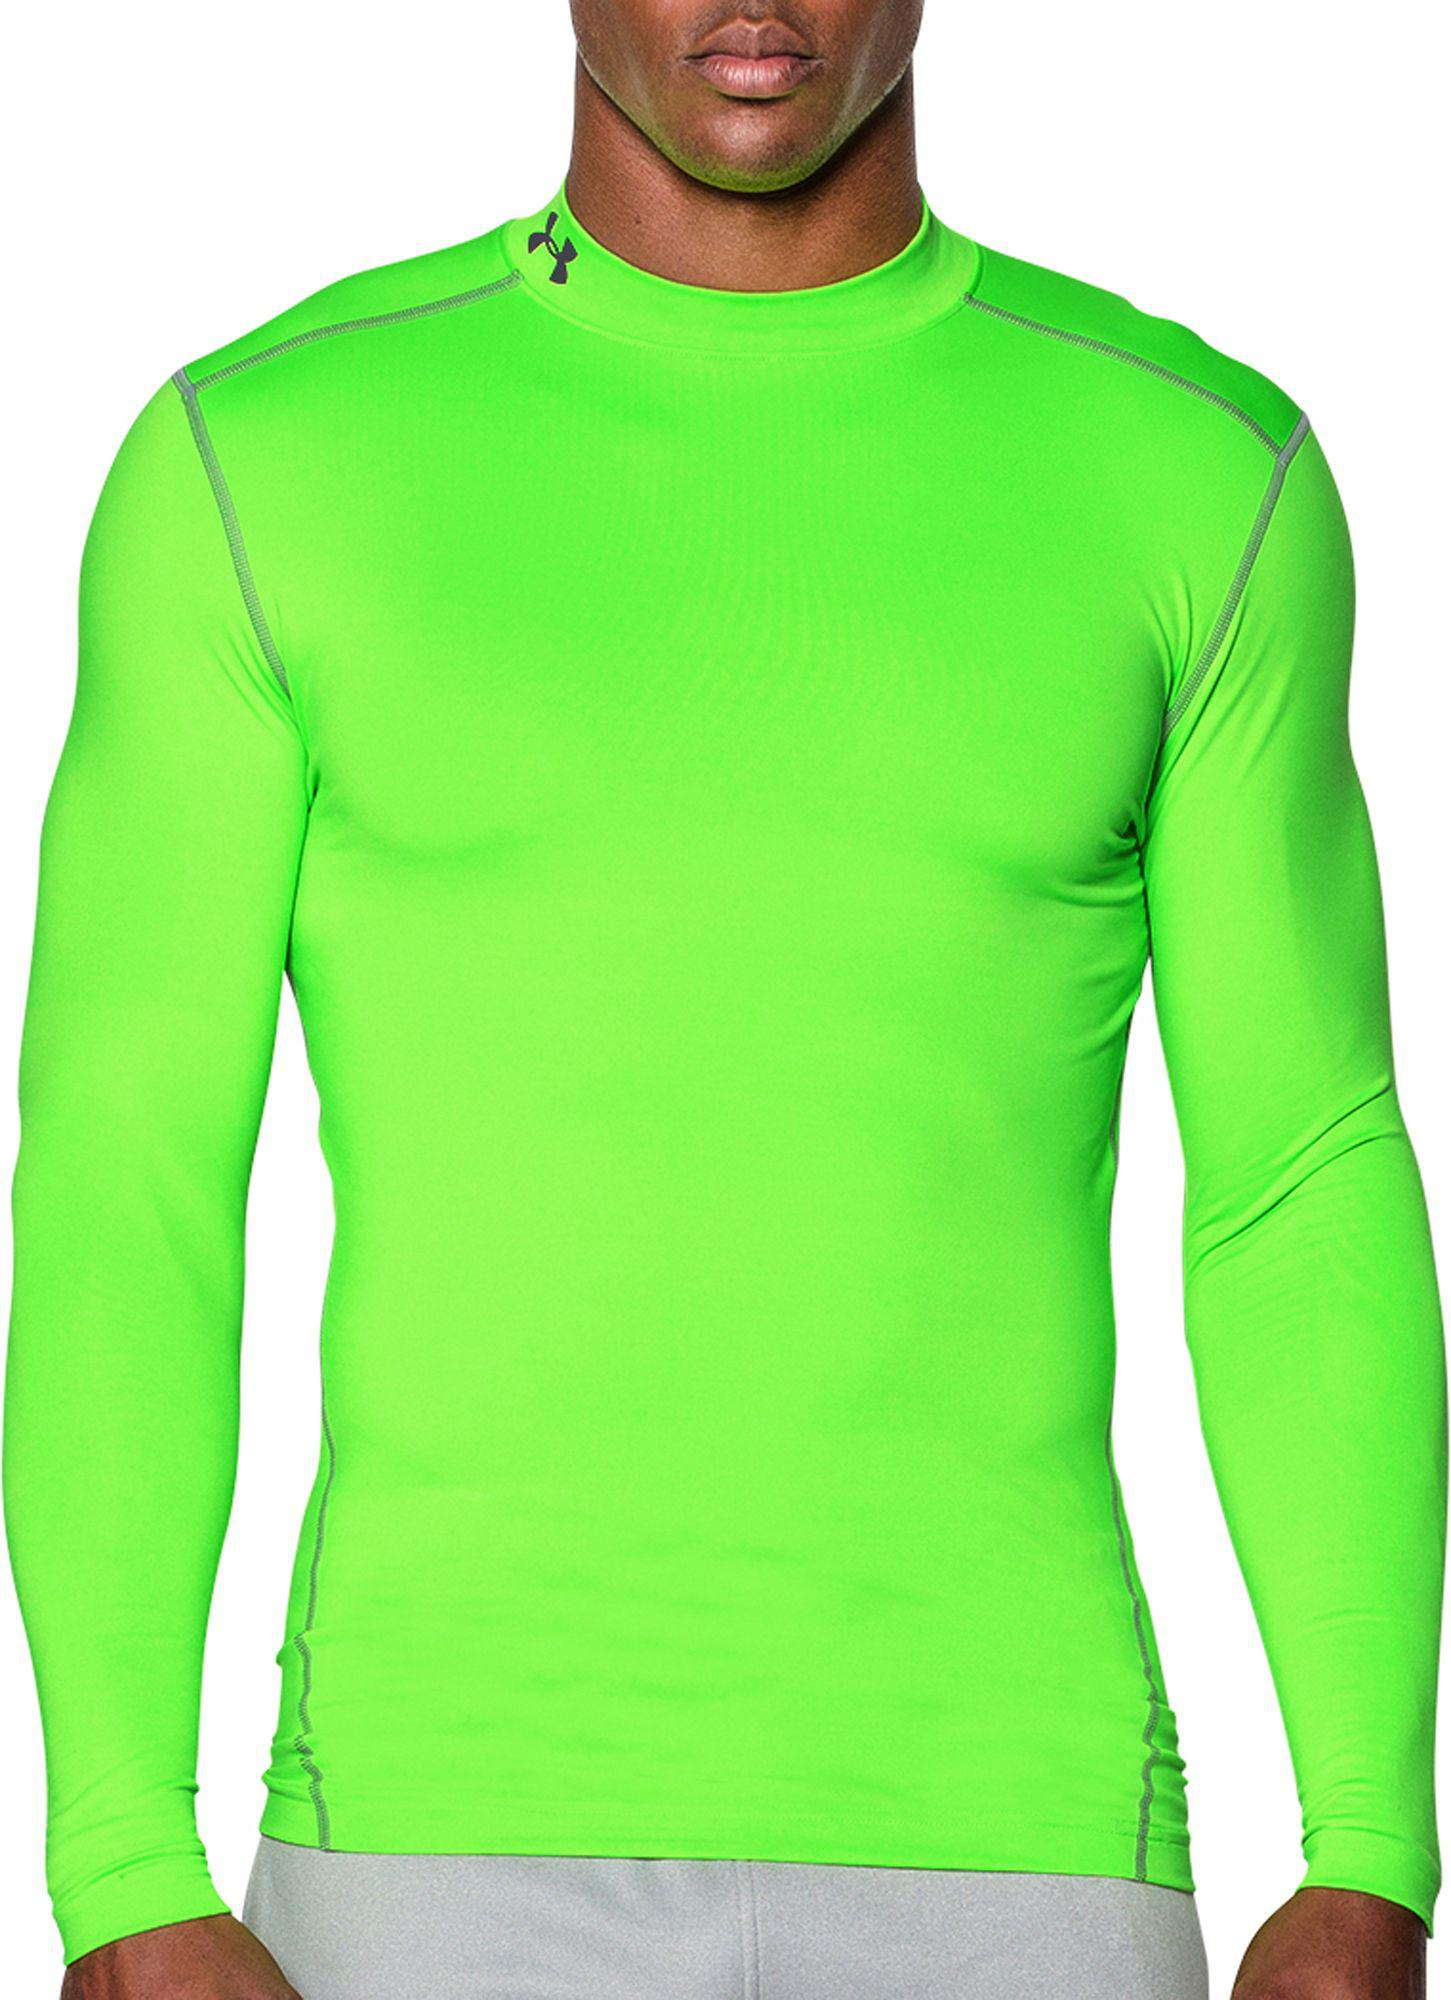 d14e4915adc Under Armour - Green Coldgear Armour Compression Mock Neck Long Sleeve  Shirt for Men - Lyst